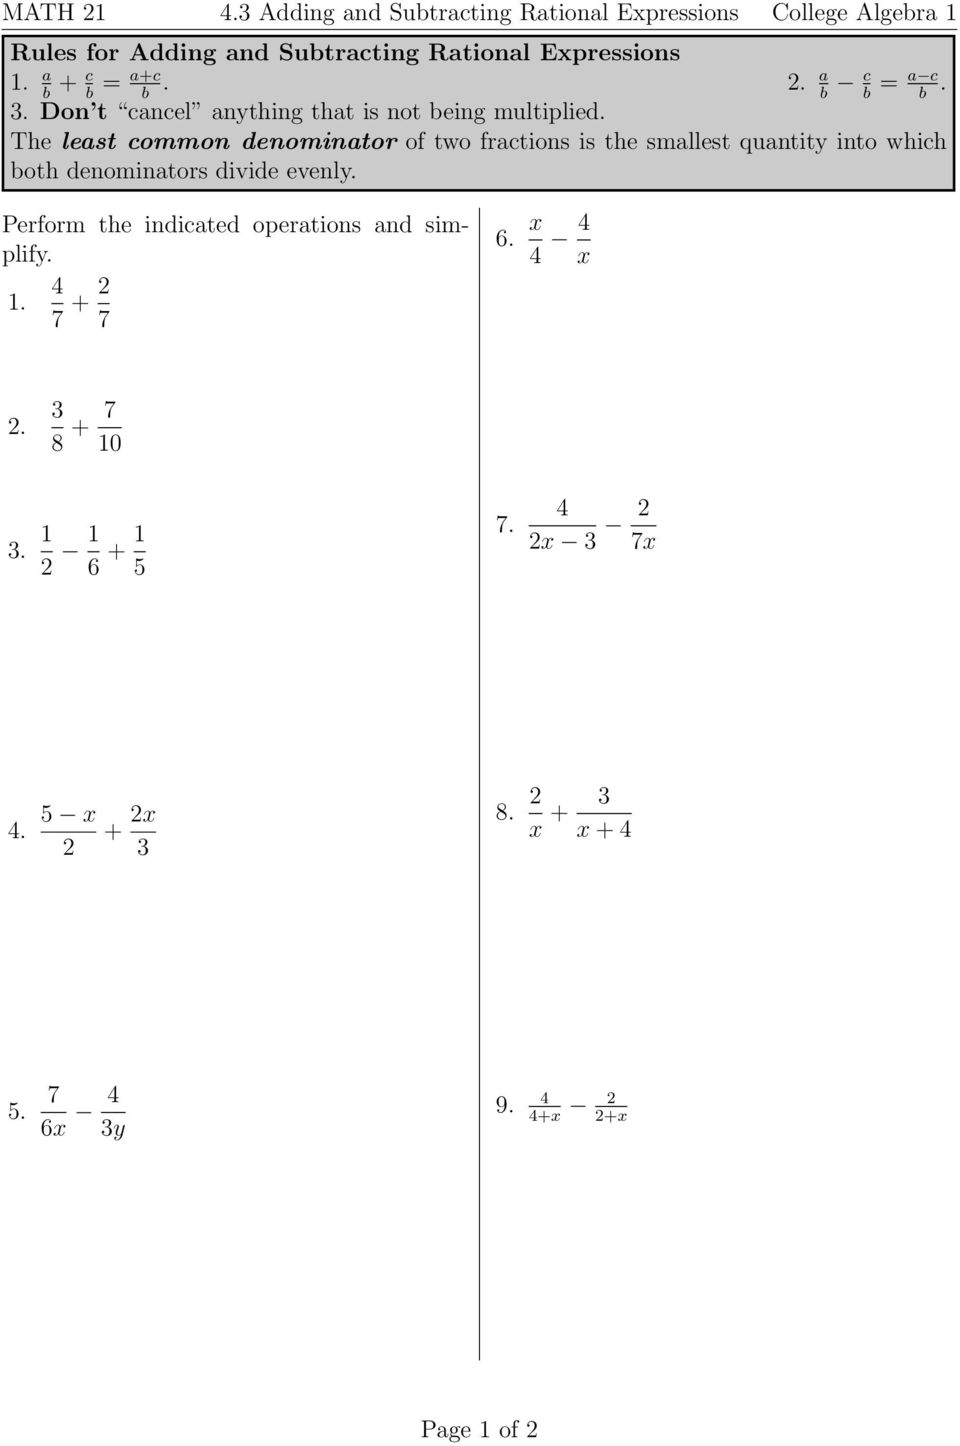 The least common denominator of two fractions is the smallest quantity into which both denominators divide evenly.